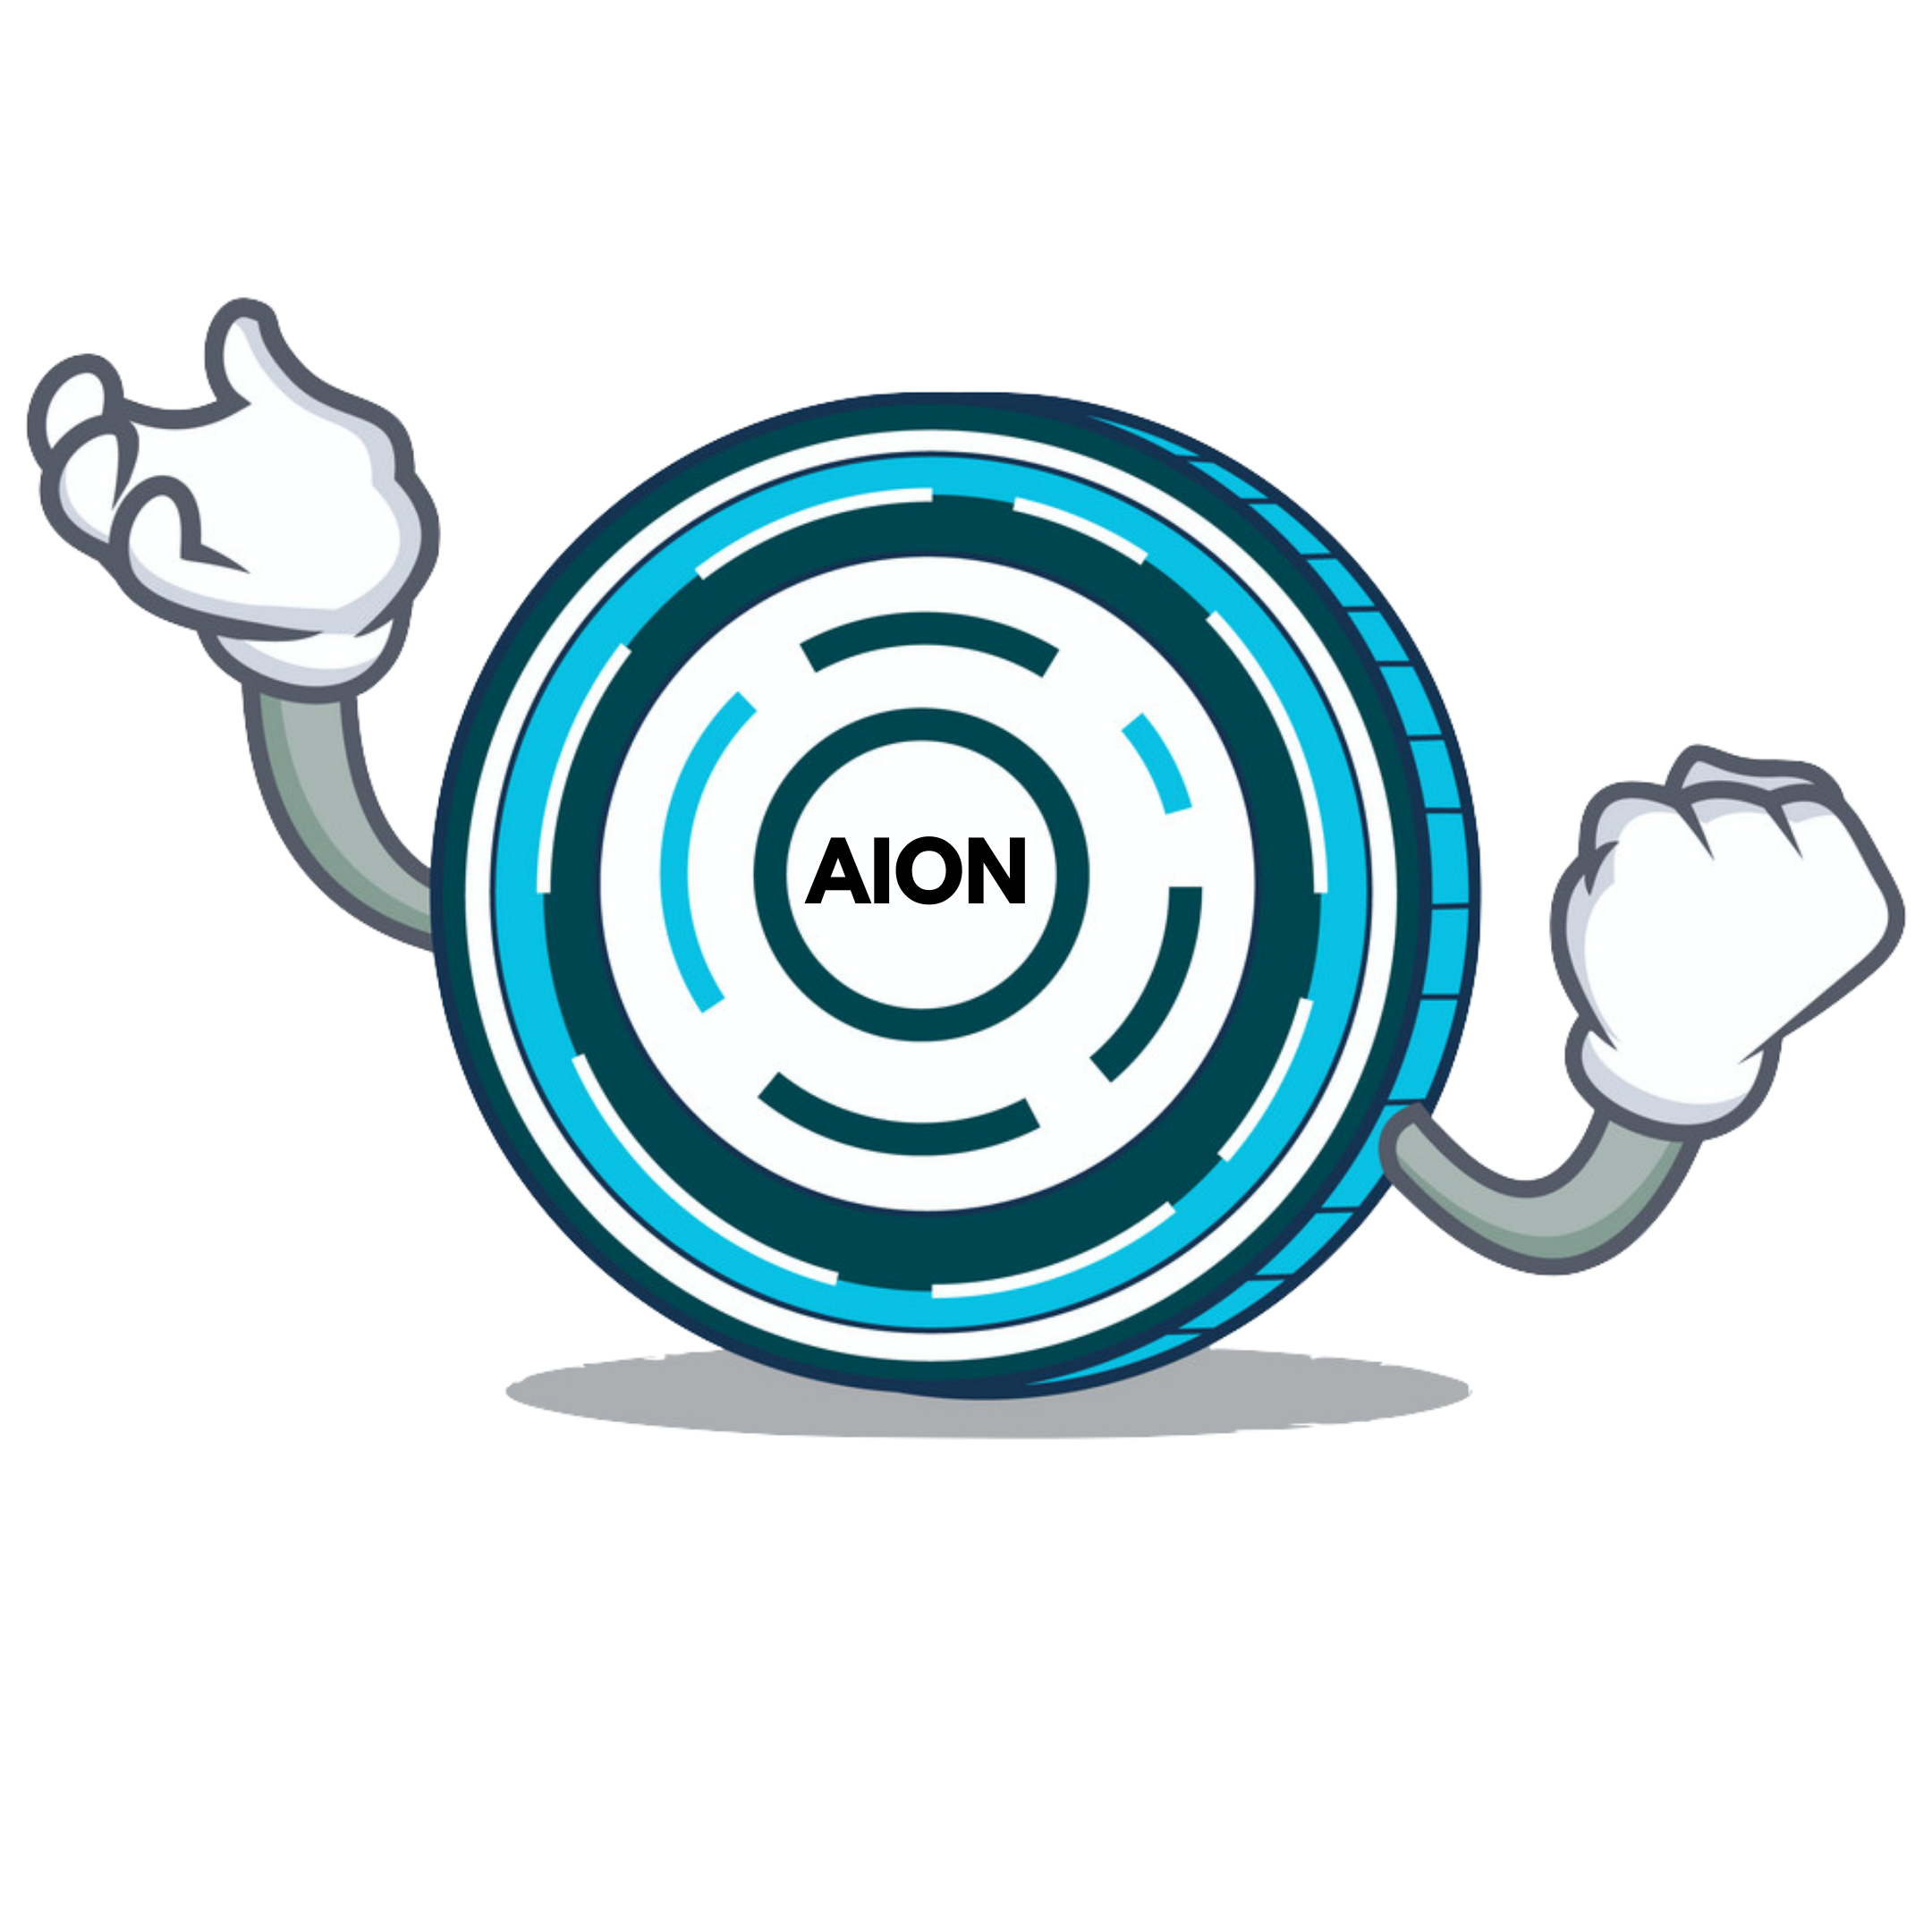 What is AION network ? A Quick Summary